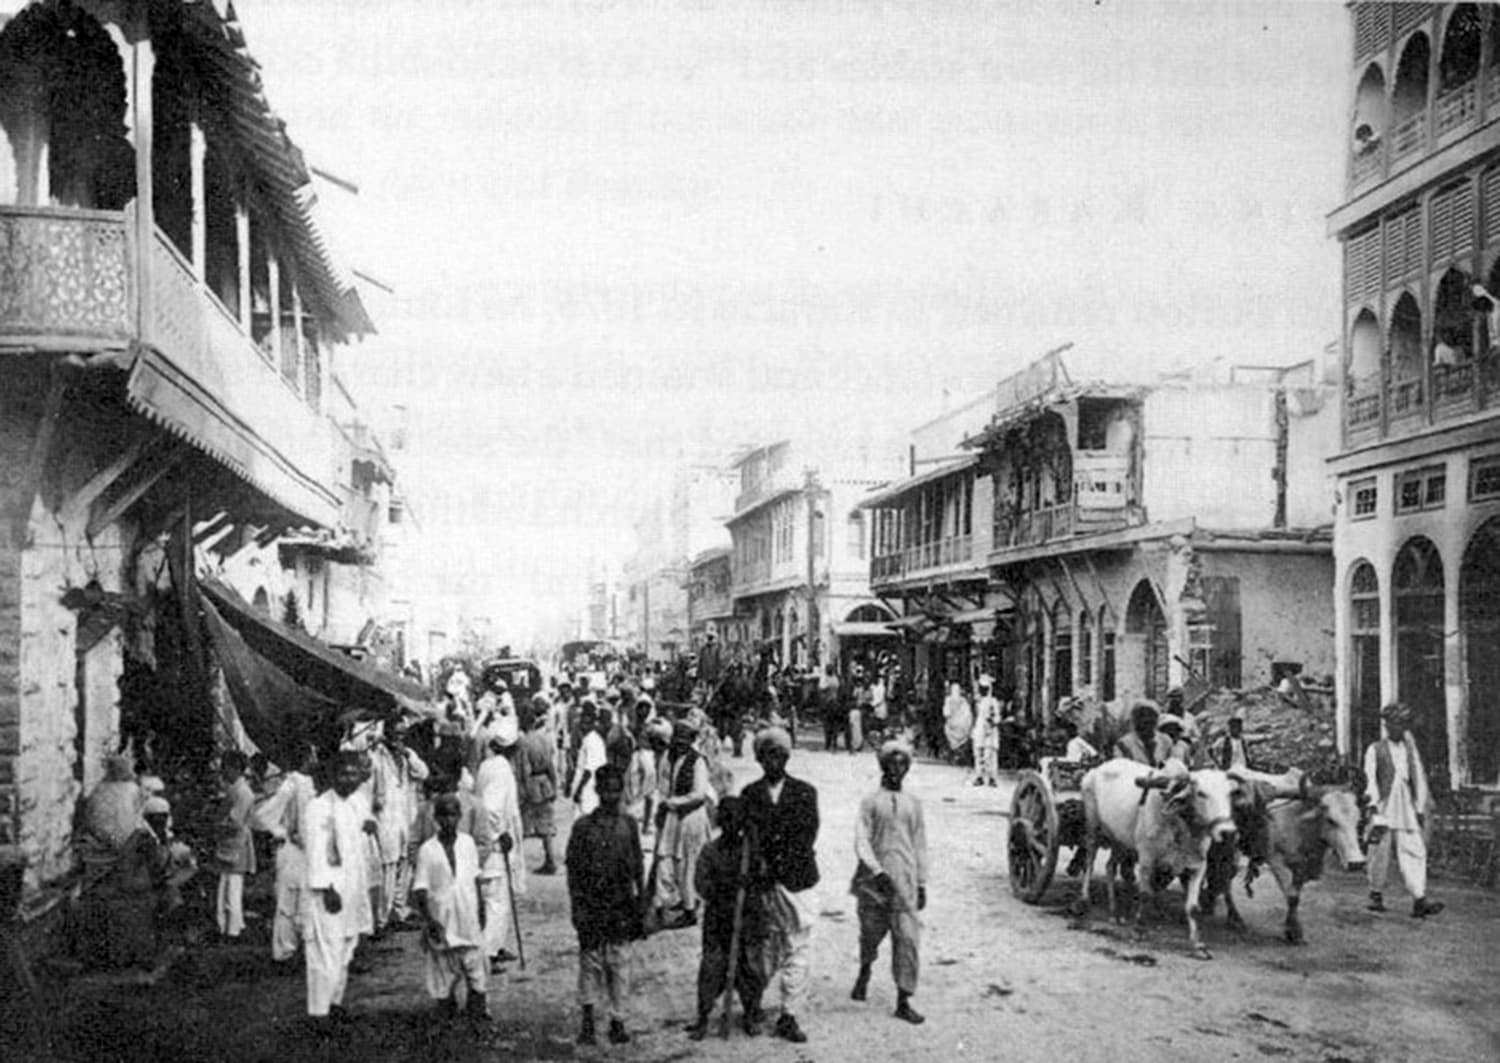 Karachi in 1880. The city had a major sanitation problem. (Photo: Native Pakistan)